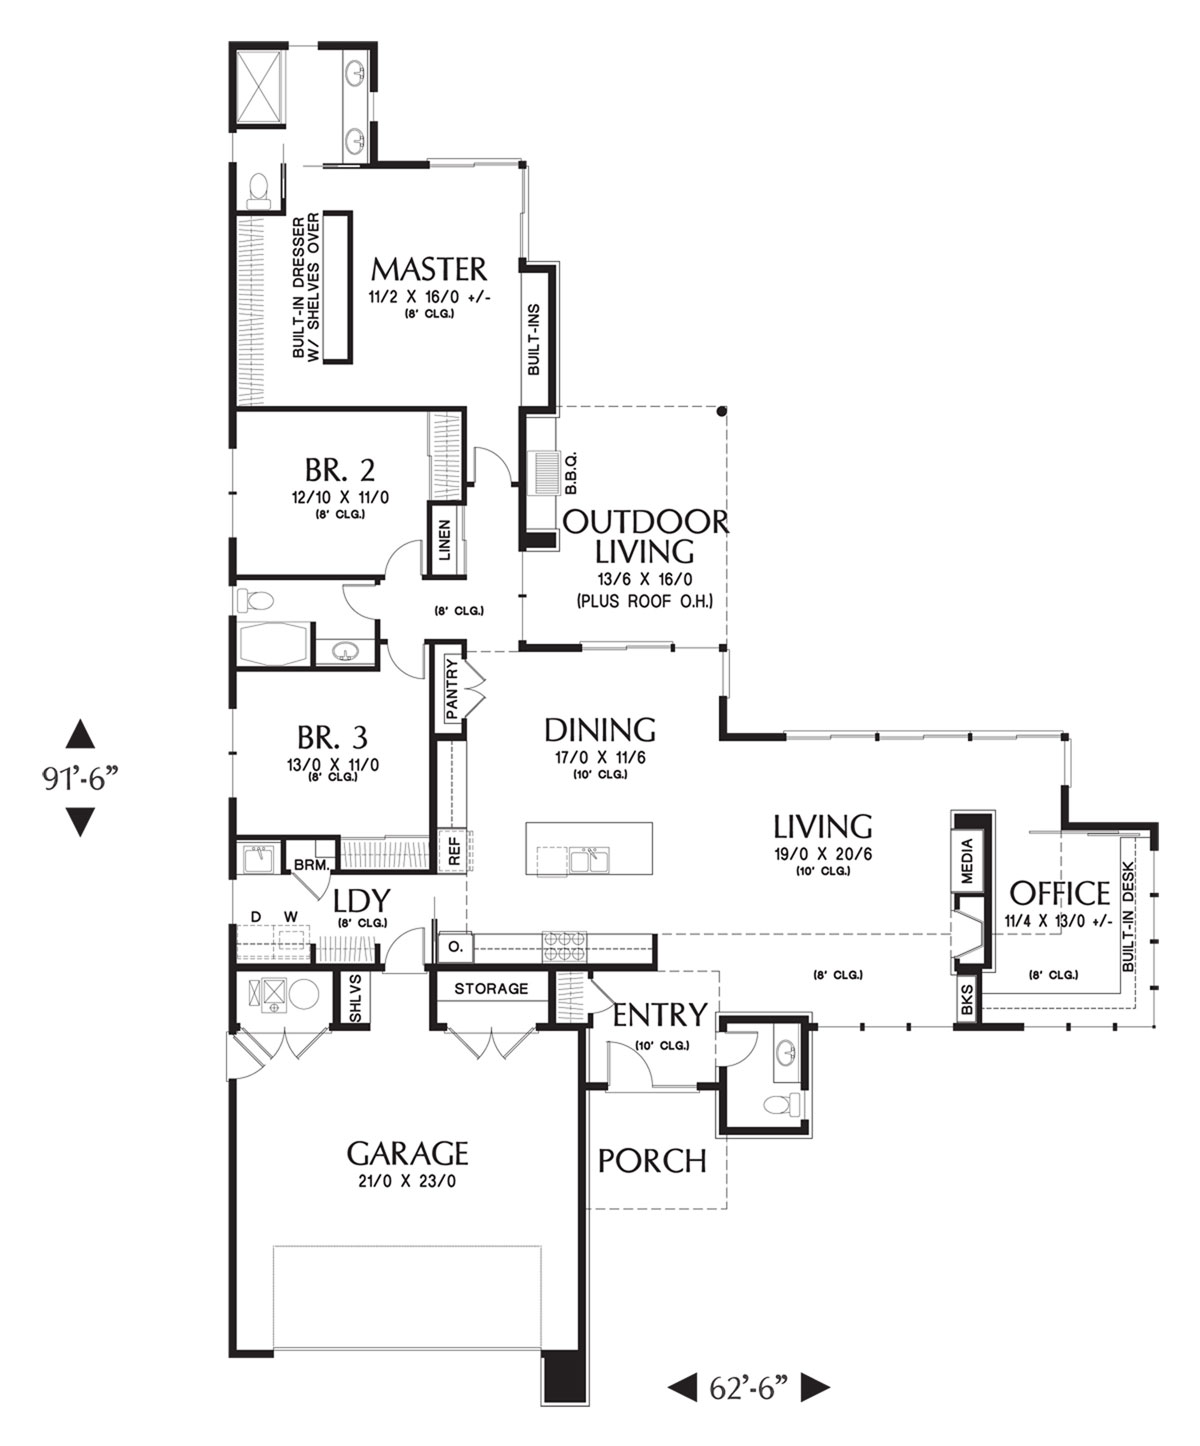 Main FLoor Plan image of 3rd Place 2012 ENERGY STAR House Plan